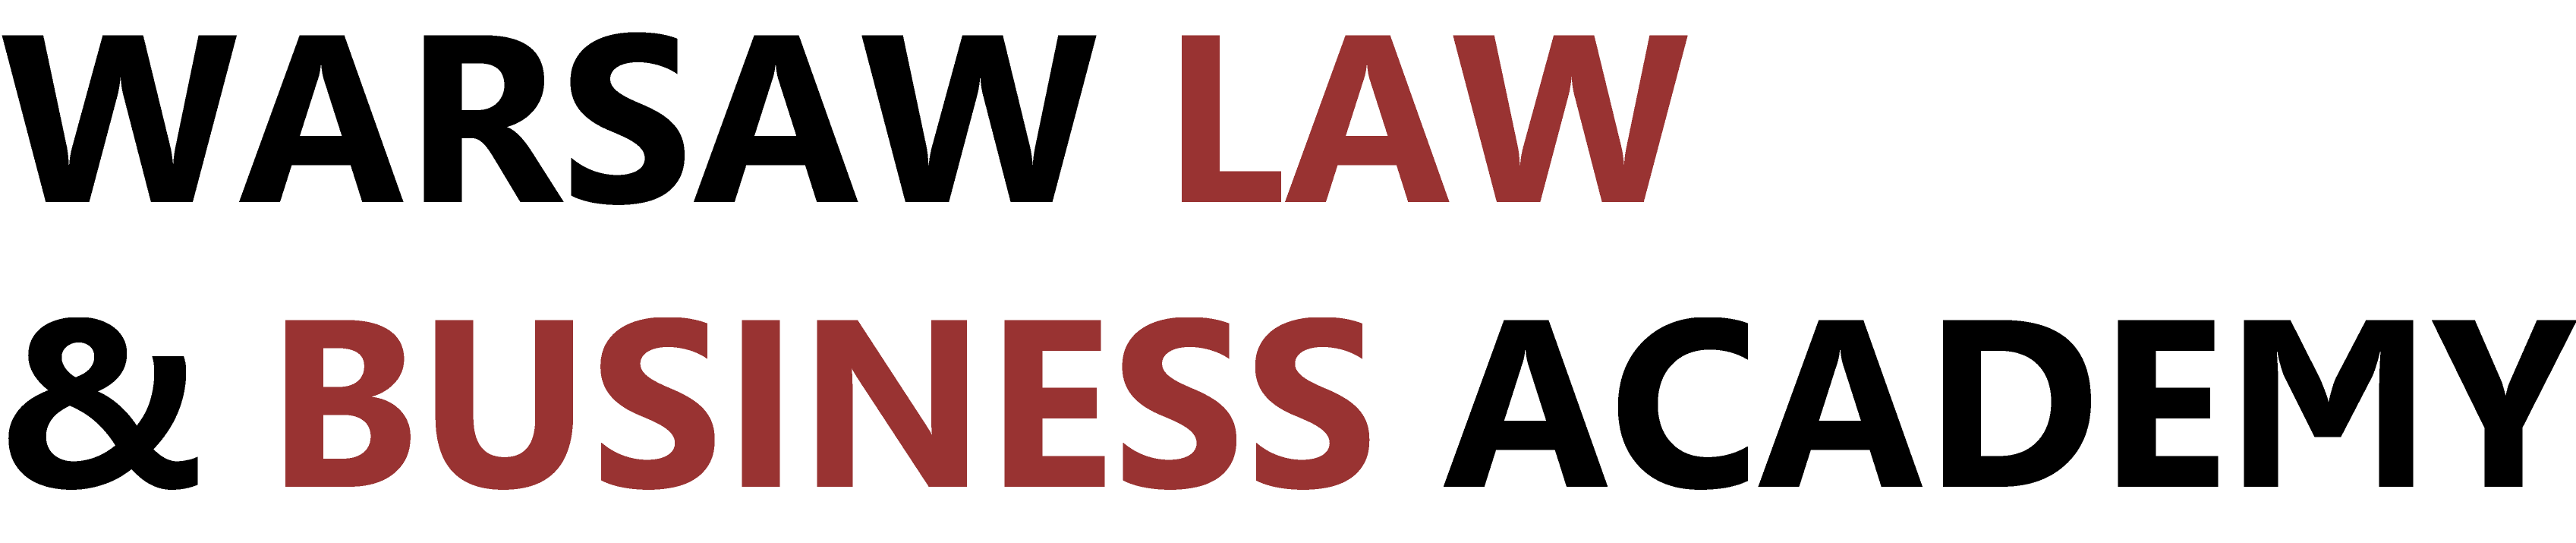 warsaw law and business academy logo